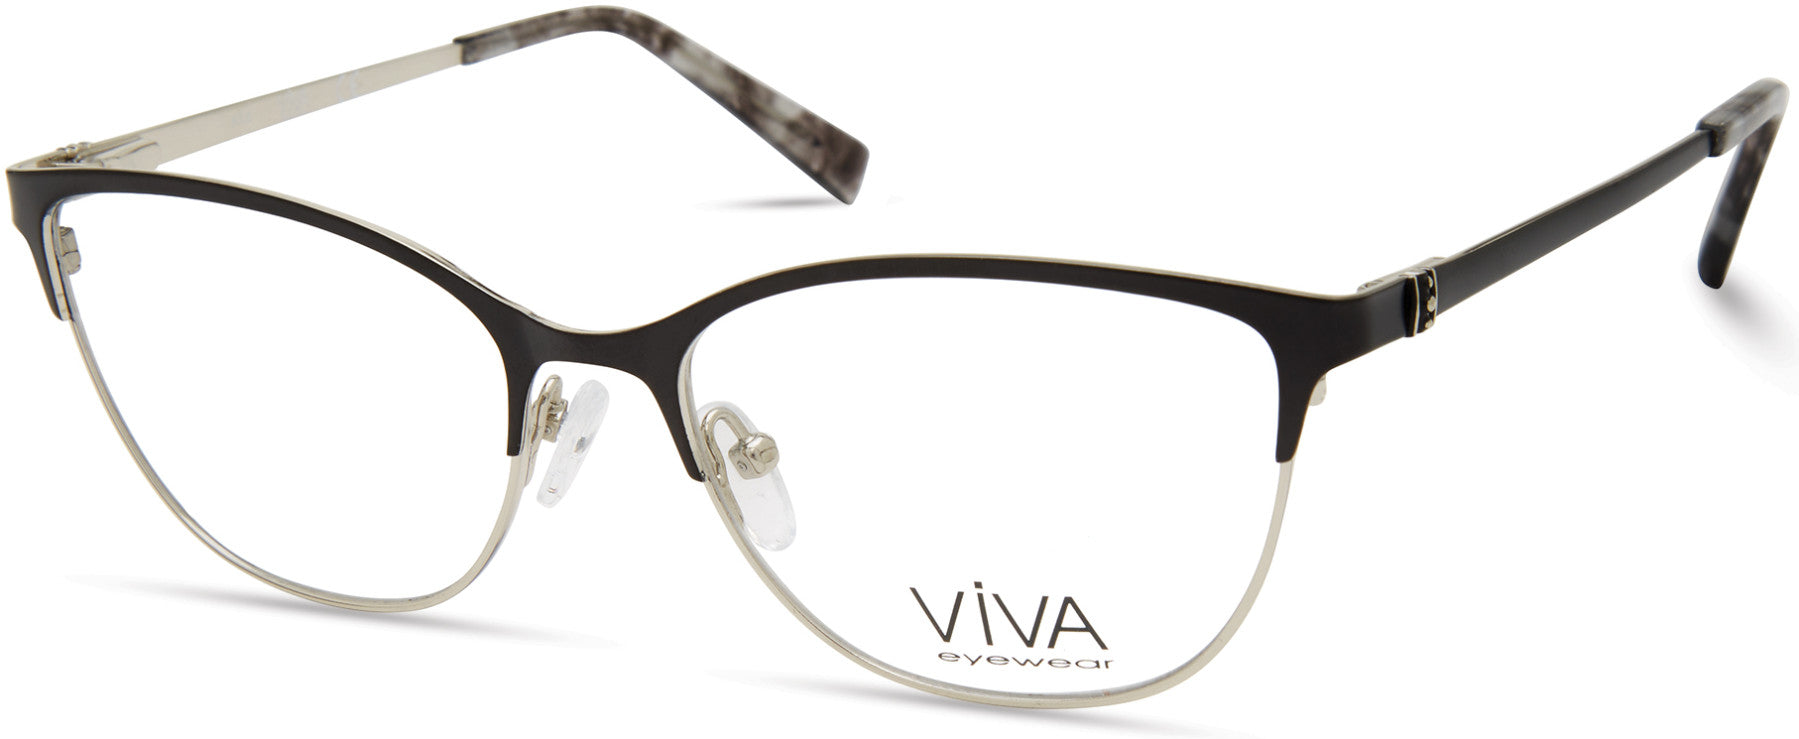 Viva VV4524 Square Eyeglasses For Women